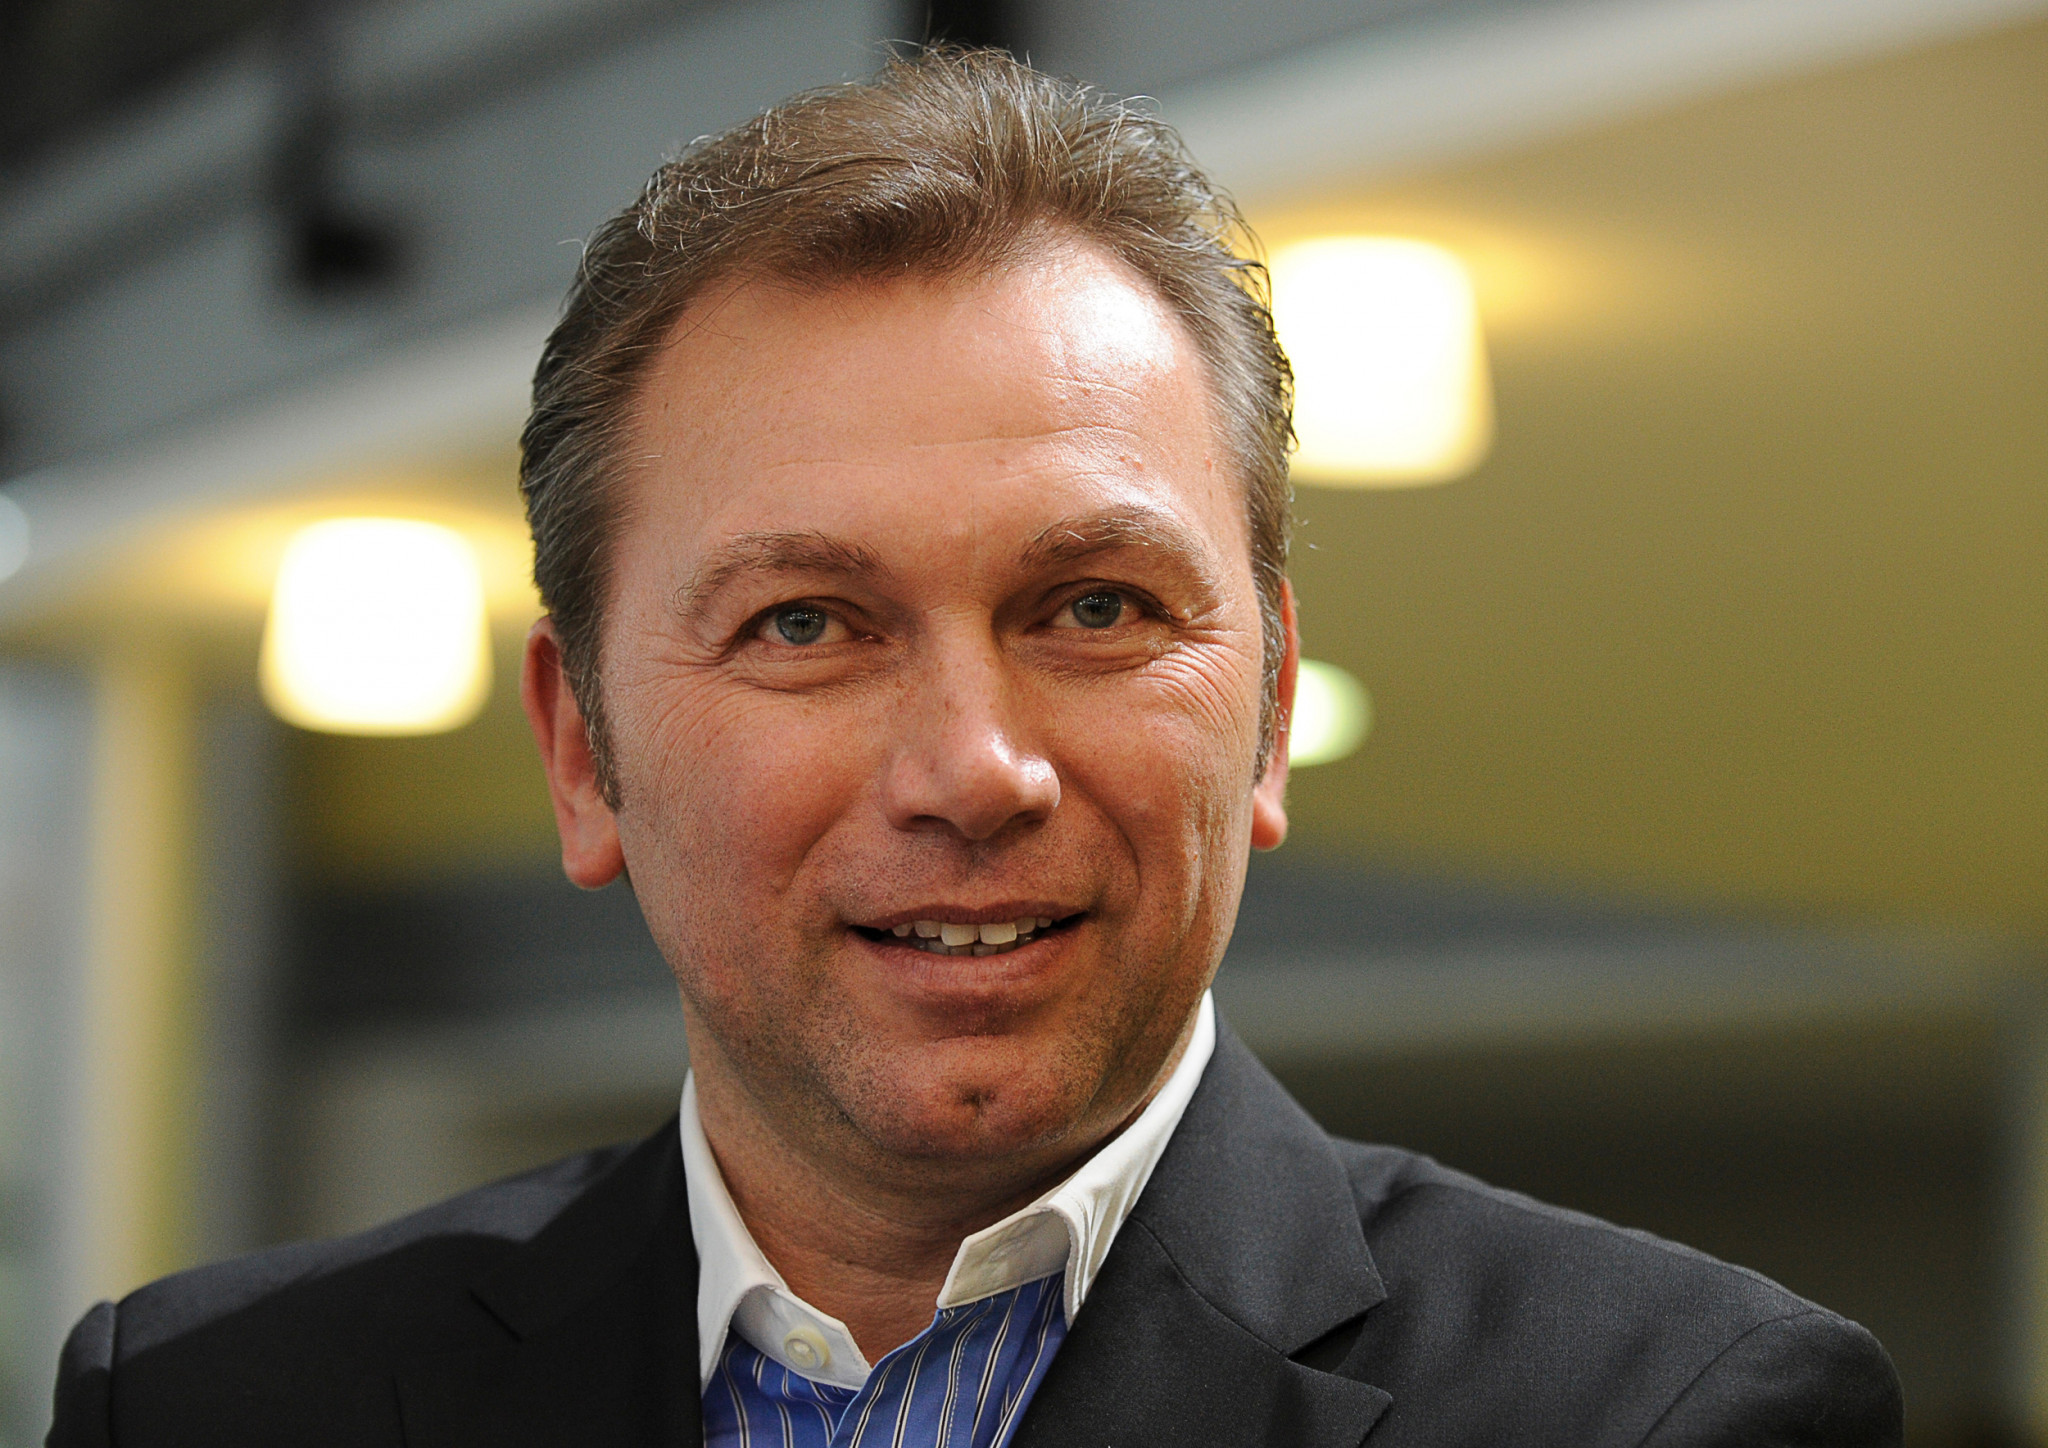 Johan Bruyneel has been ordered to repay $1.2 million to the US Government ©Getty Images